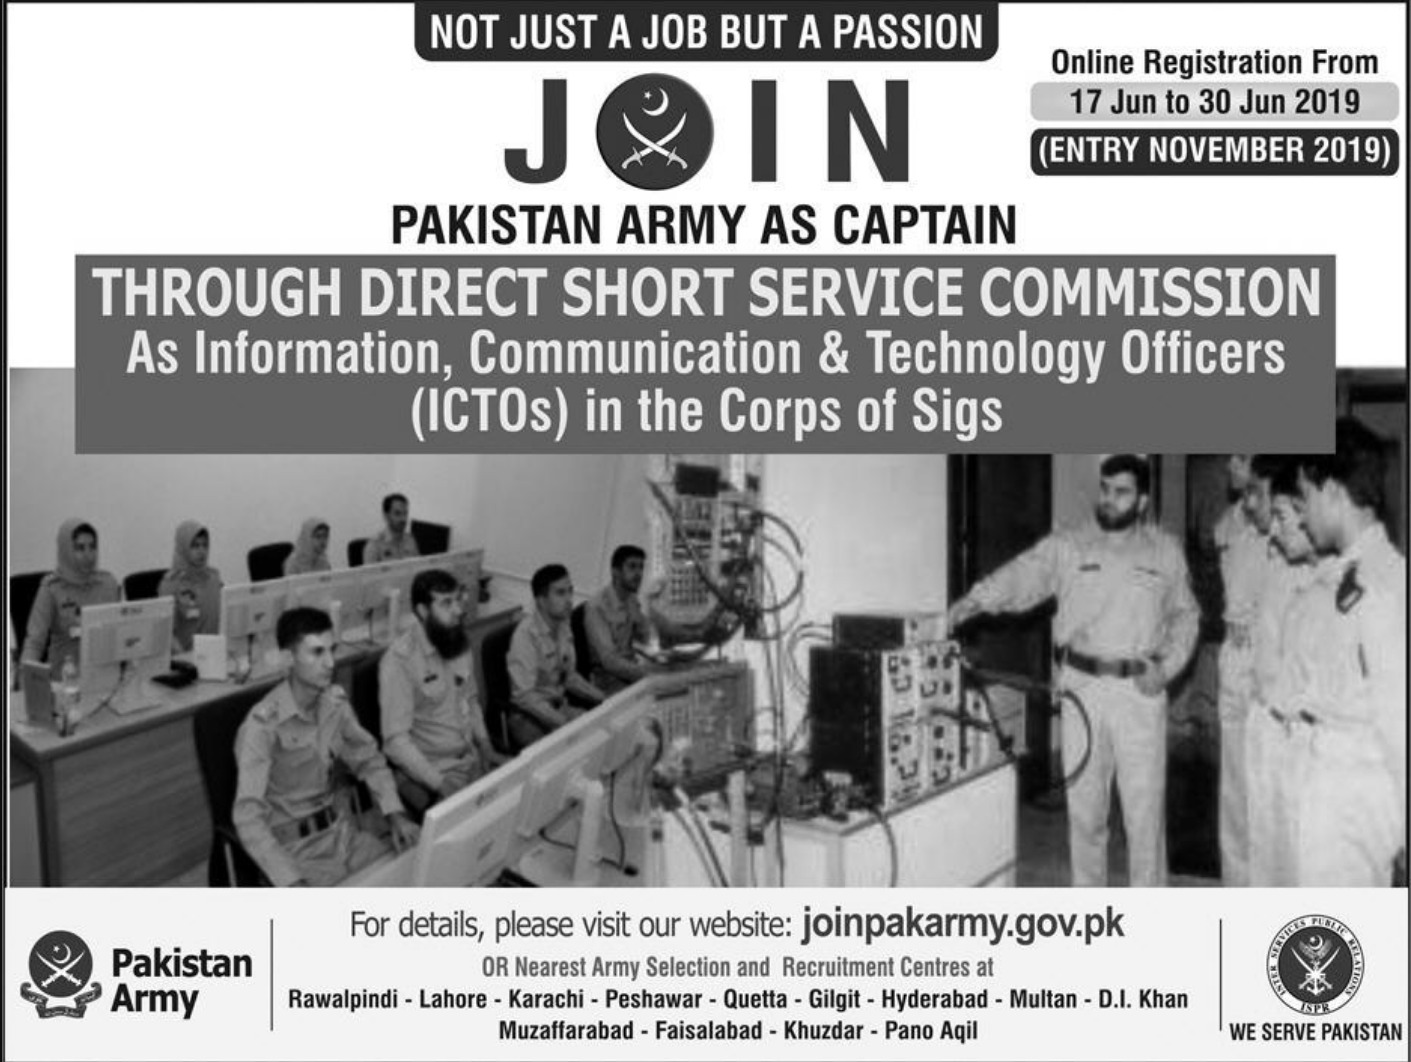 Join Pakistan Army as Captain through Direct Short Service Commission 2019